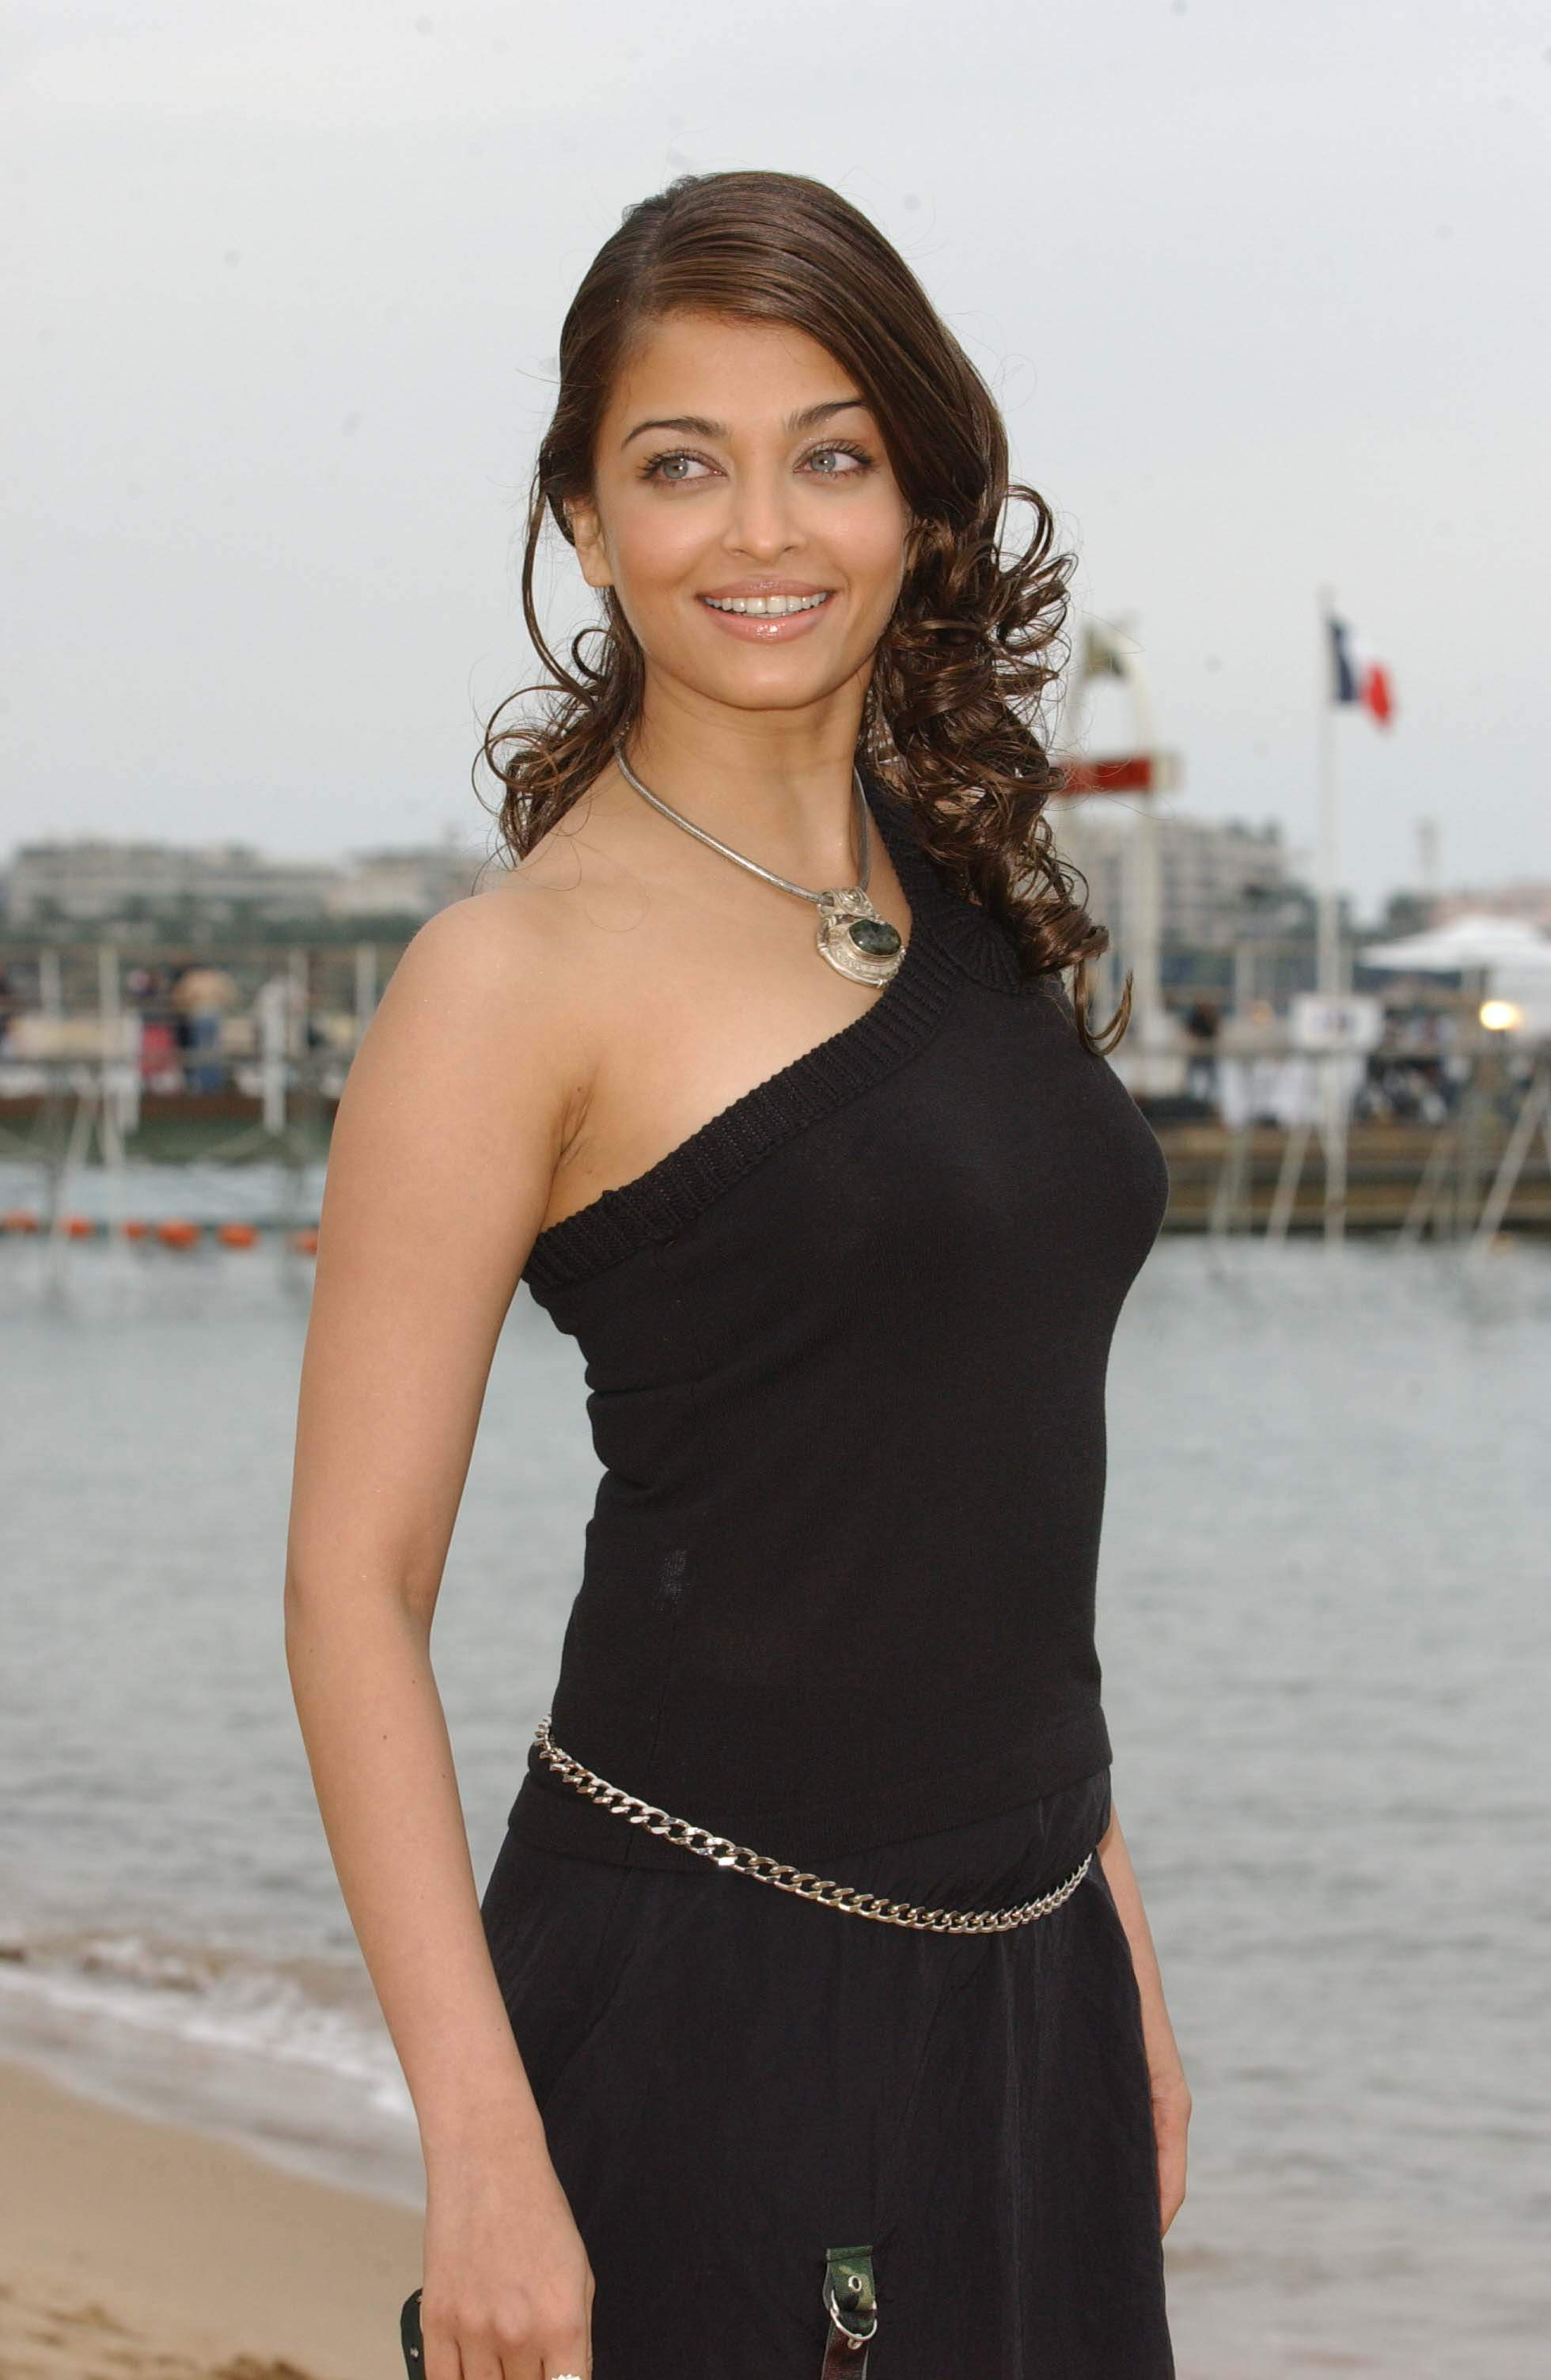 http://aishwarya-rai.narod.ru/photo/aishwarya-rai-photo-5.jpg